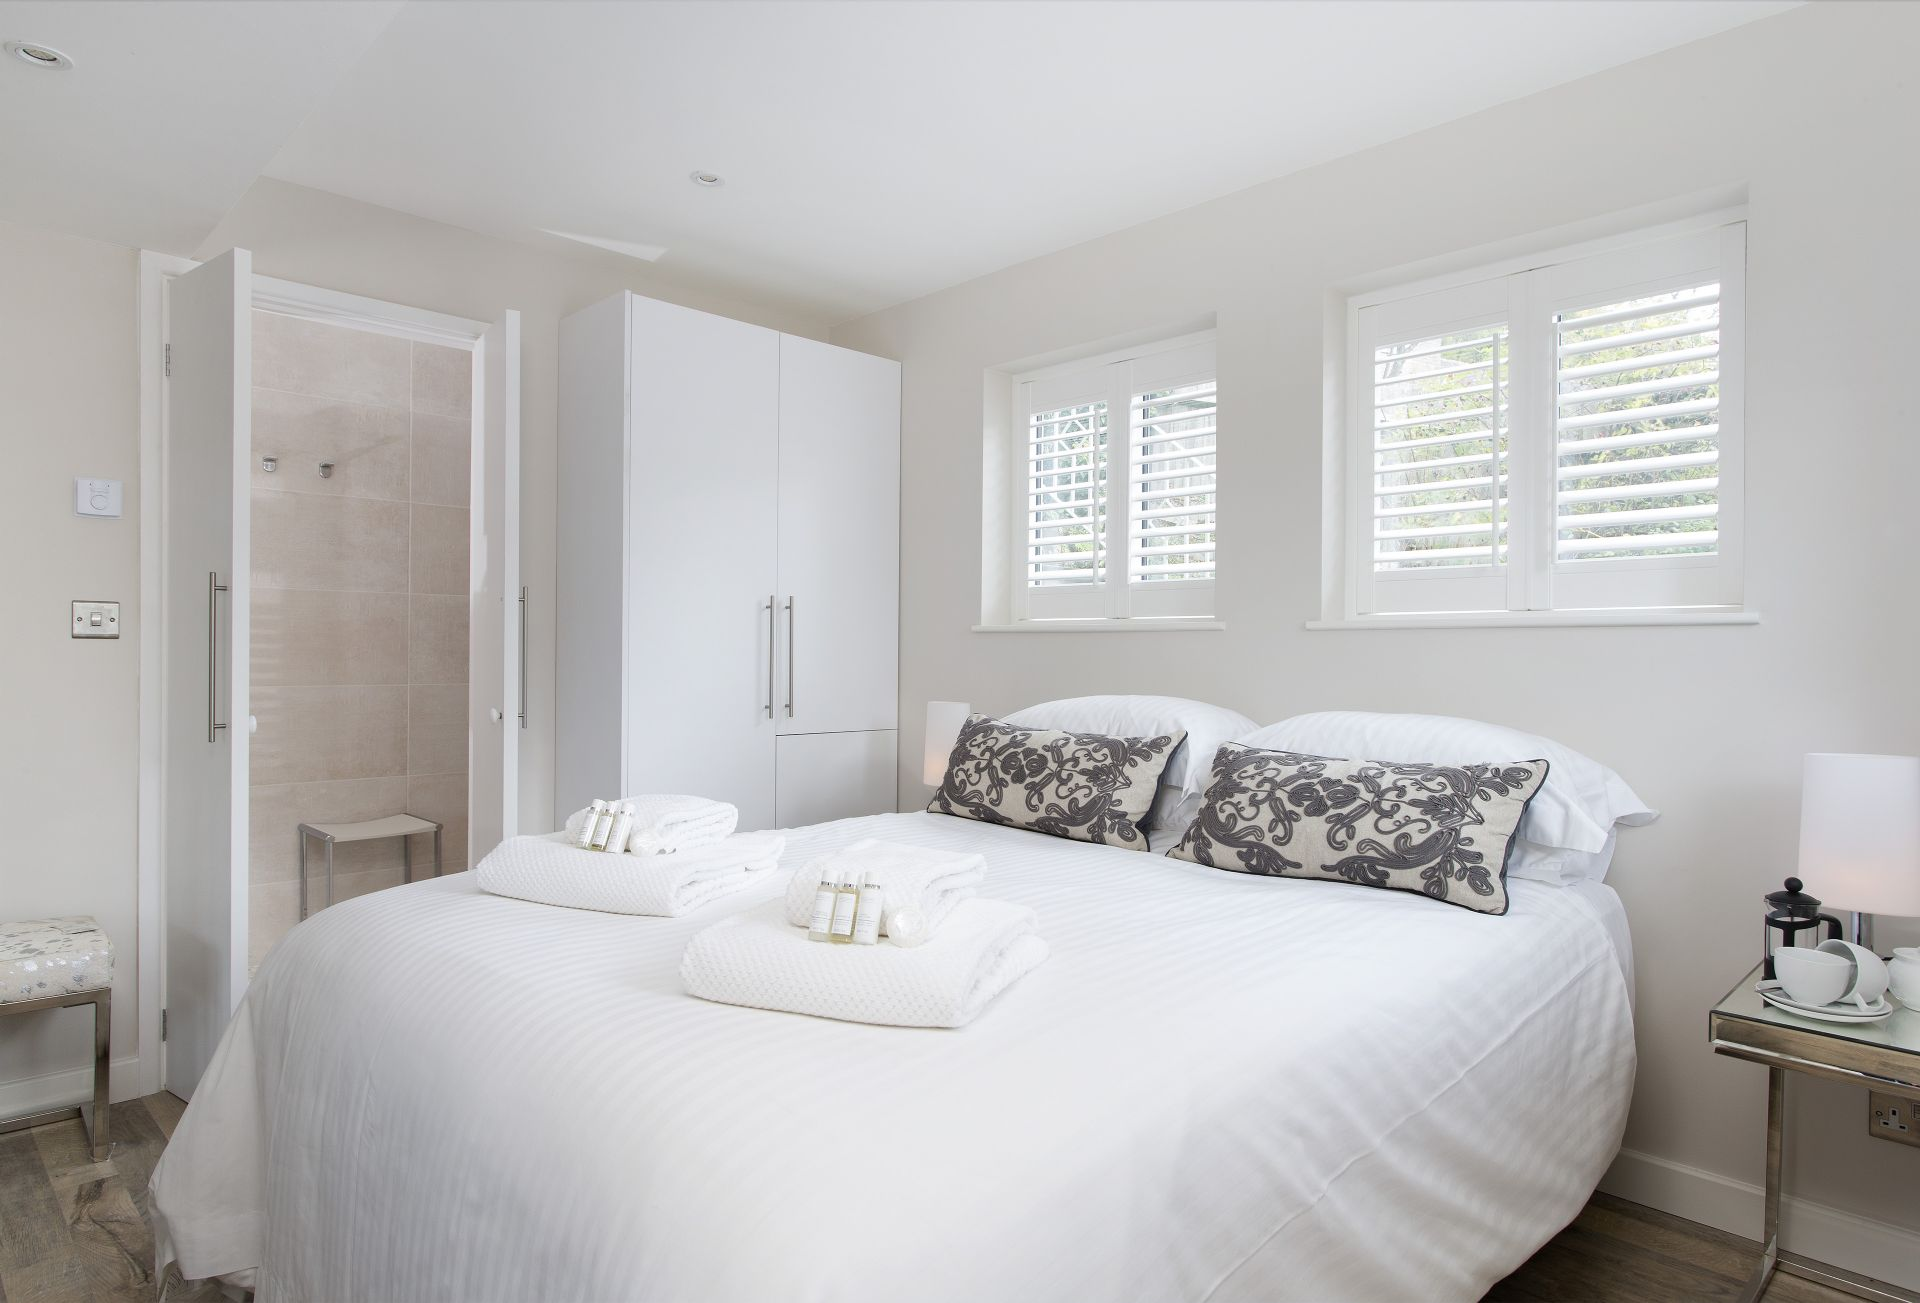 Ground floor: Bedroom with 5' king-size bed